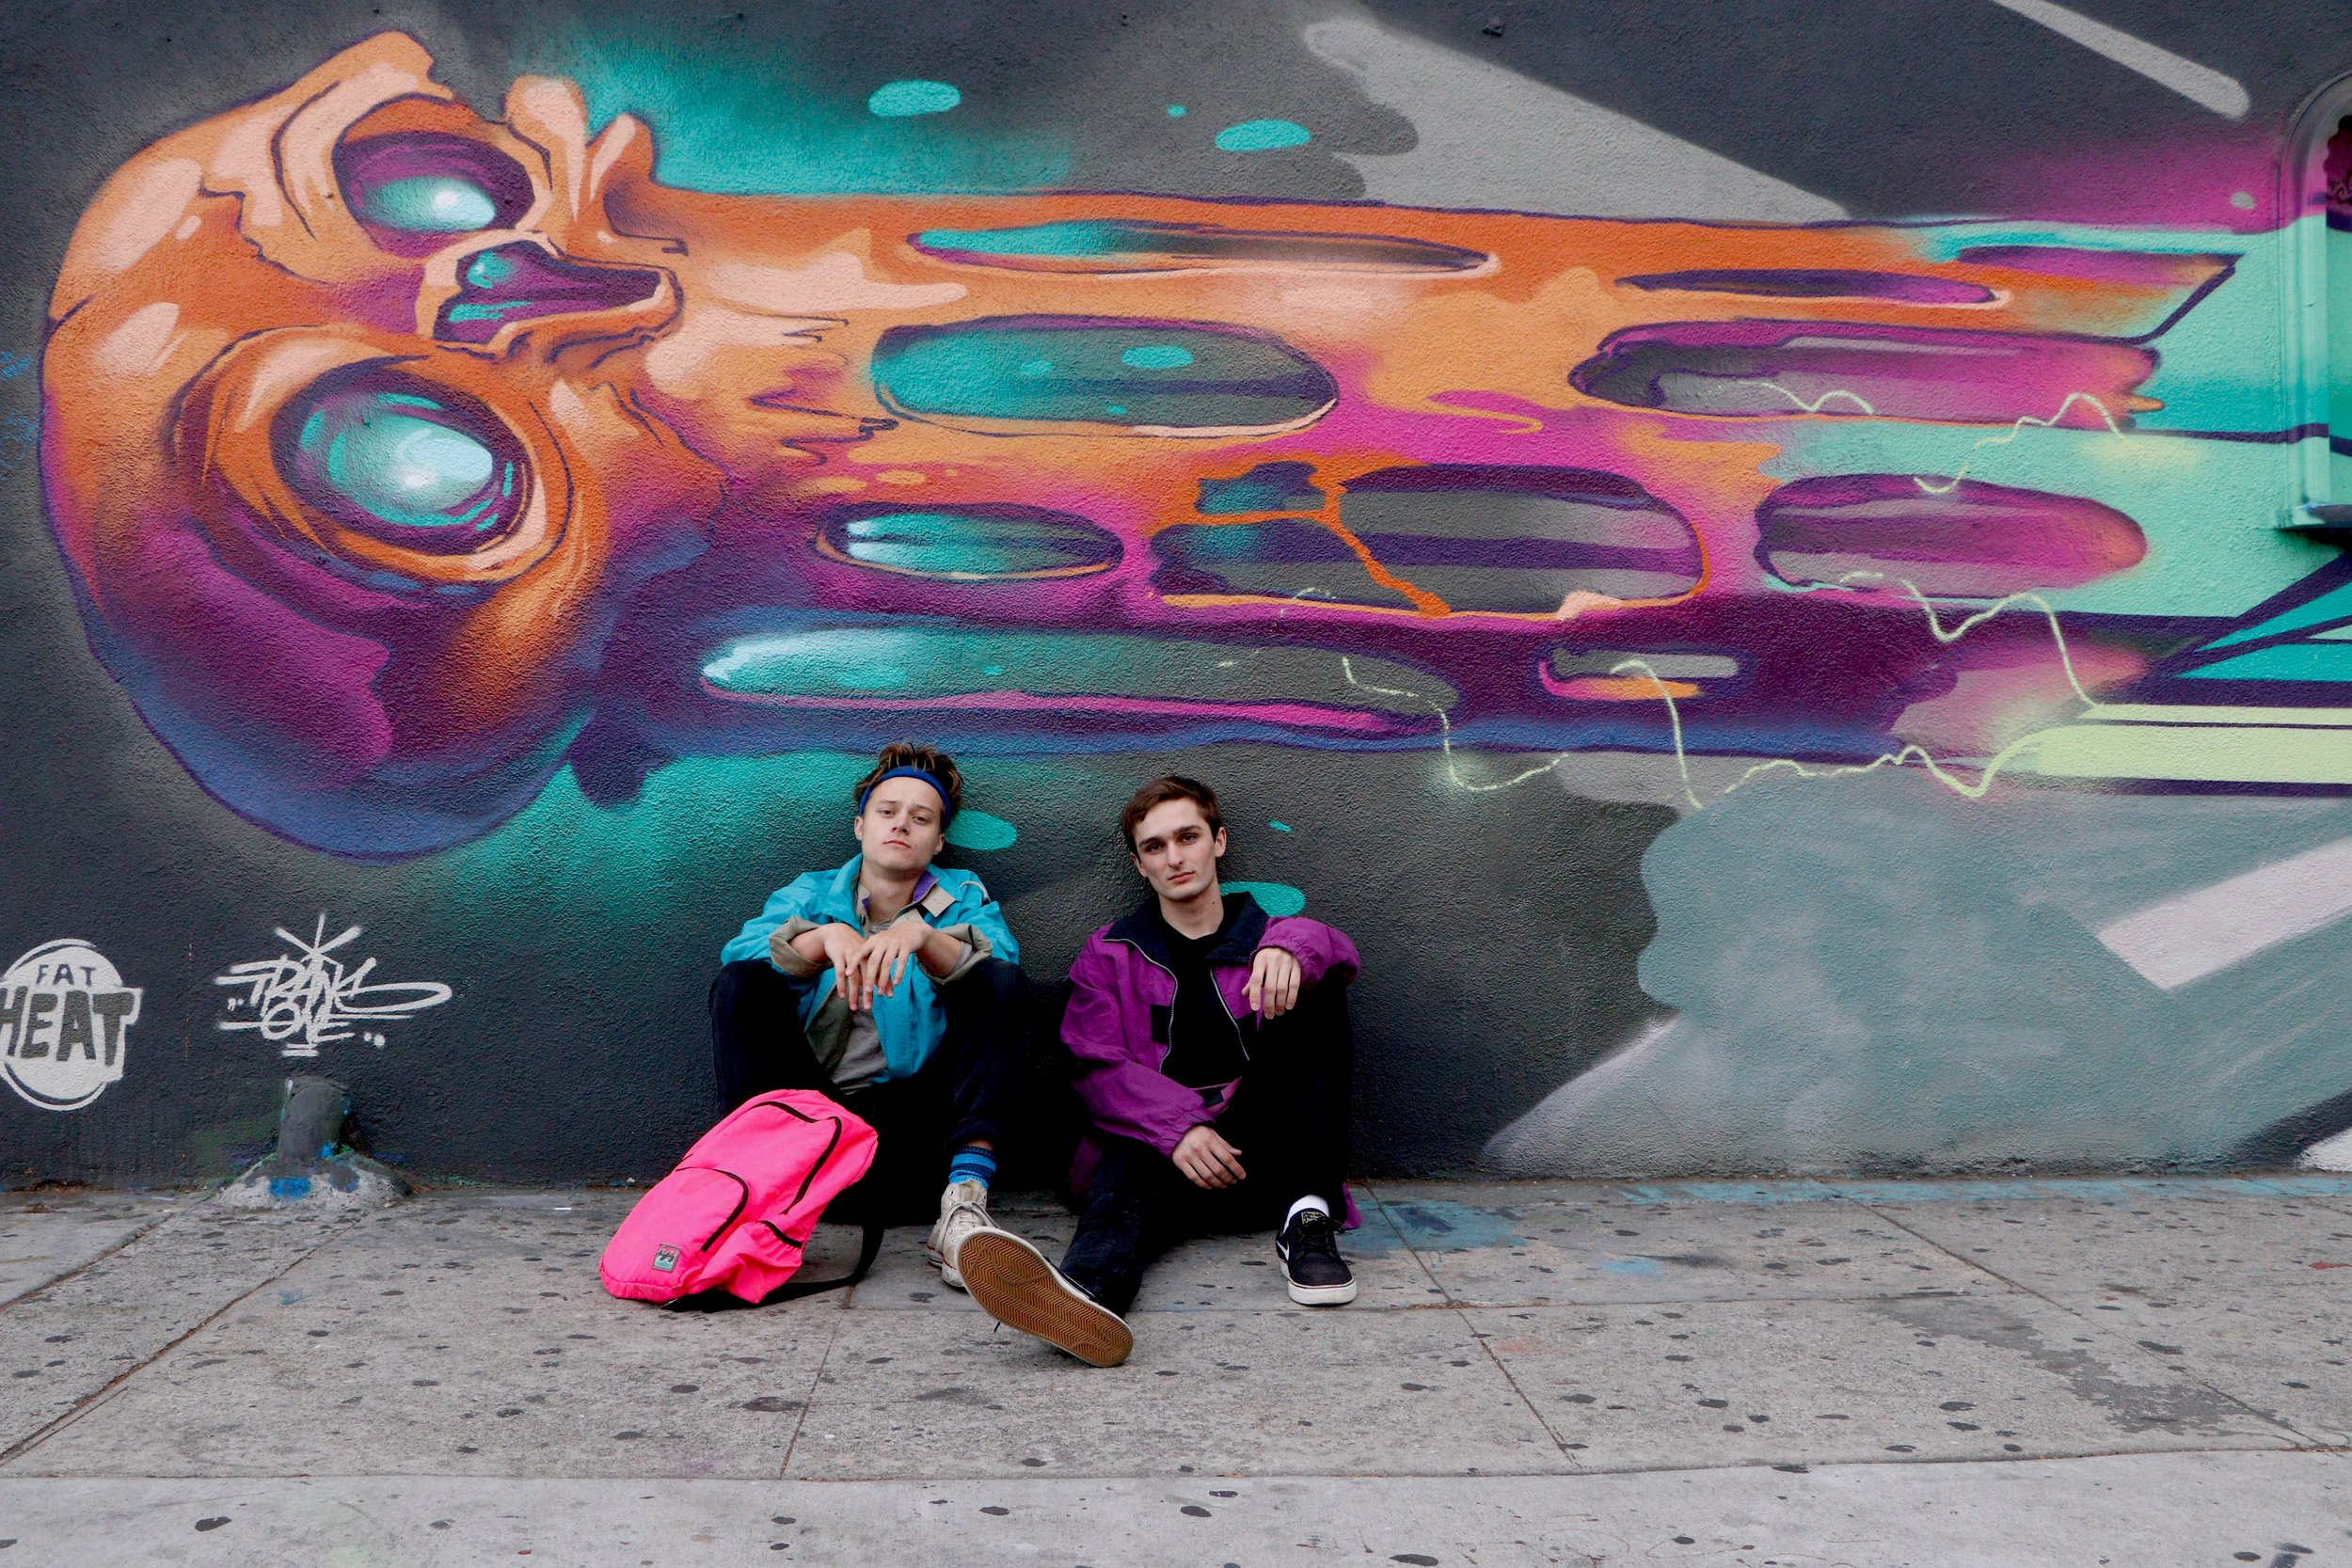 Rudy Pankow (left) and Drew Gabriel (right), playing Joey and Marvin, pose in costume next to some street art.